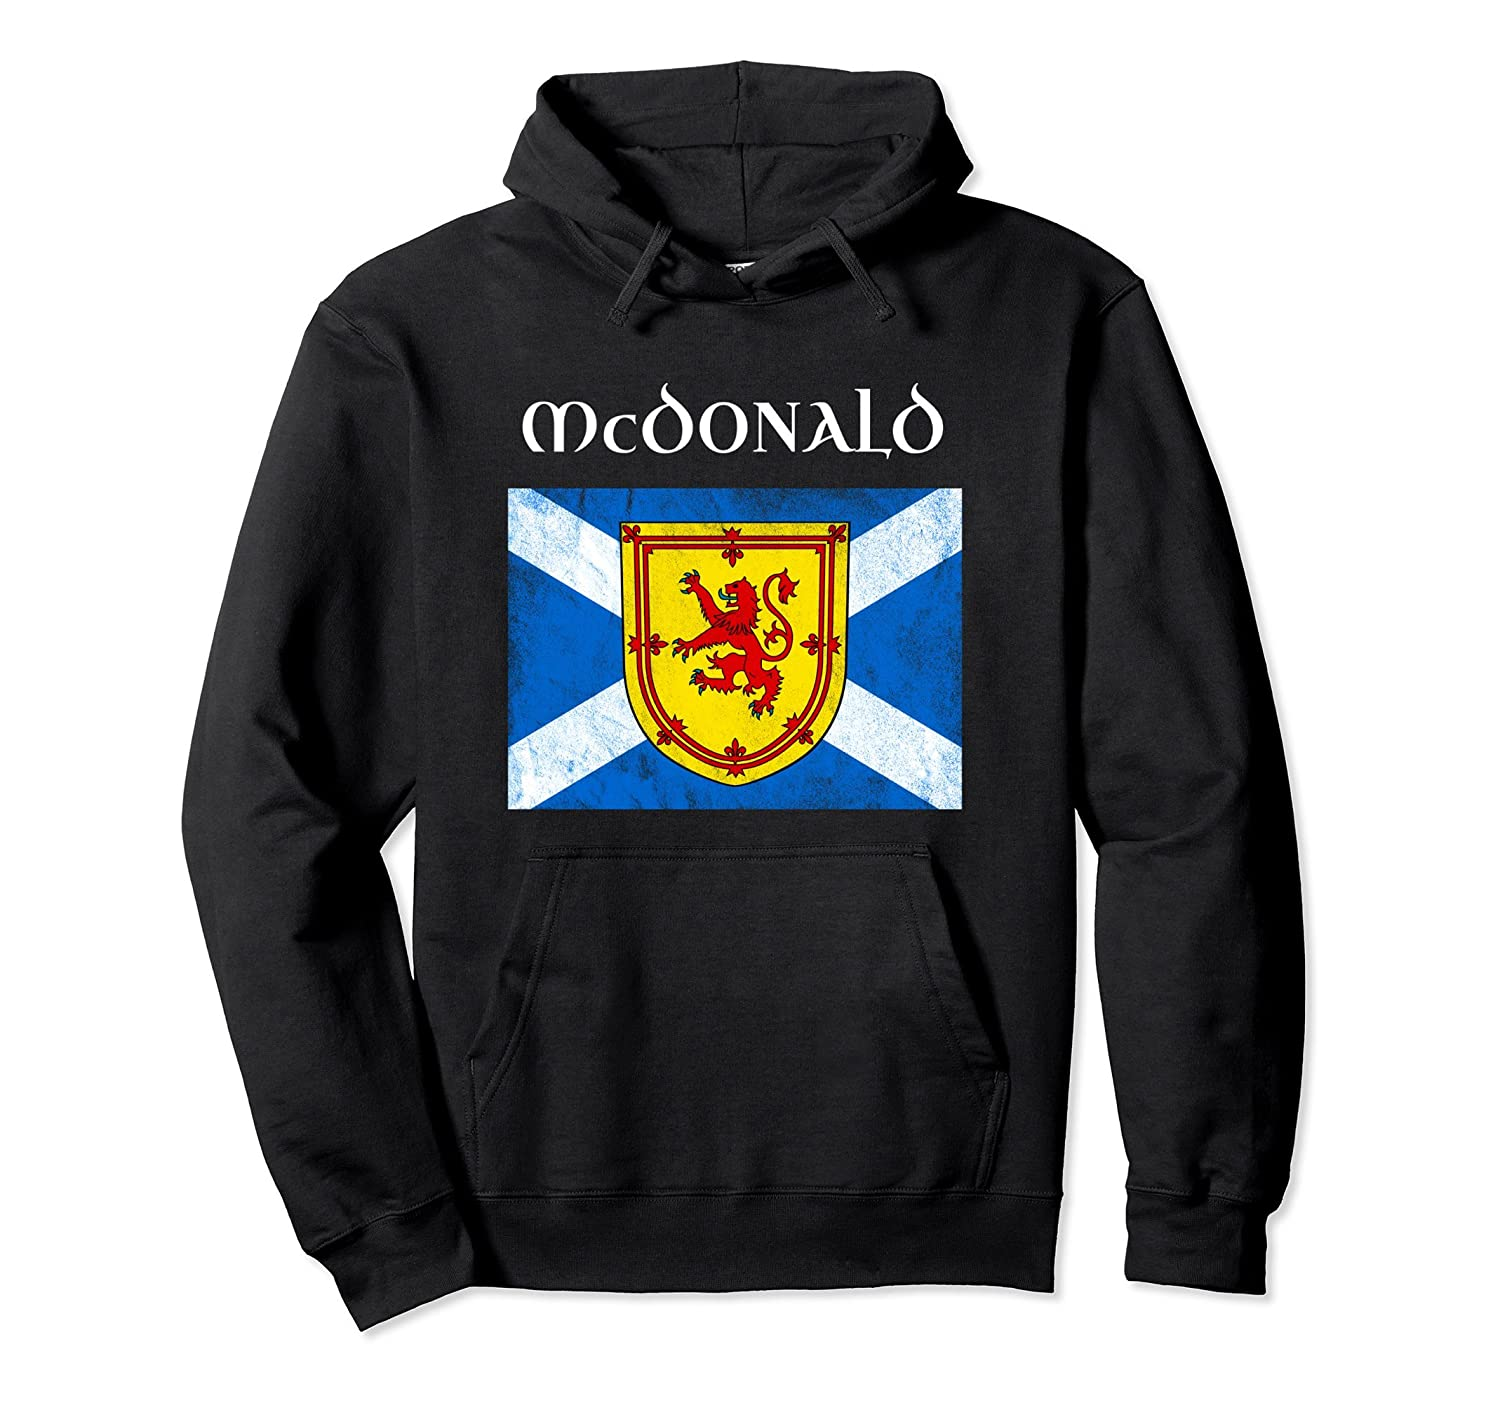 d30ec0c16 McDonald Scottish Name Hoodie Scotland Flag Sweatshirt-alottee gift ...